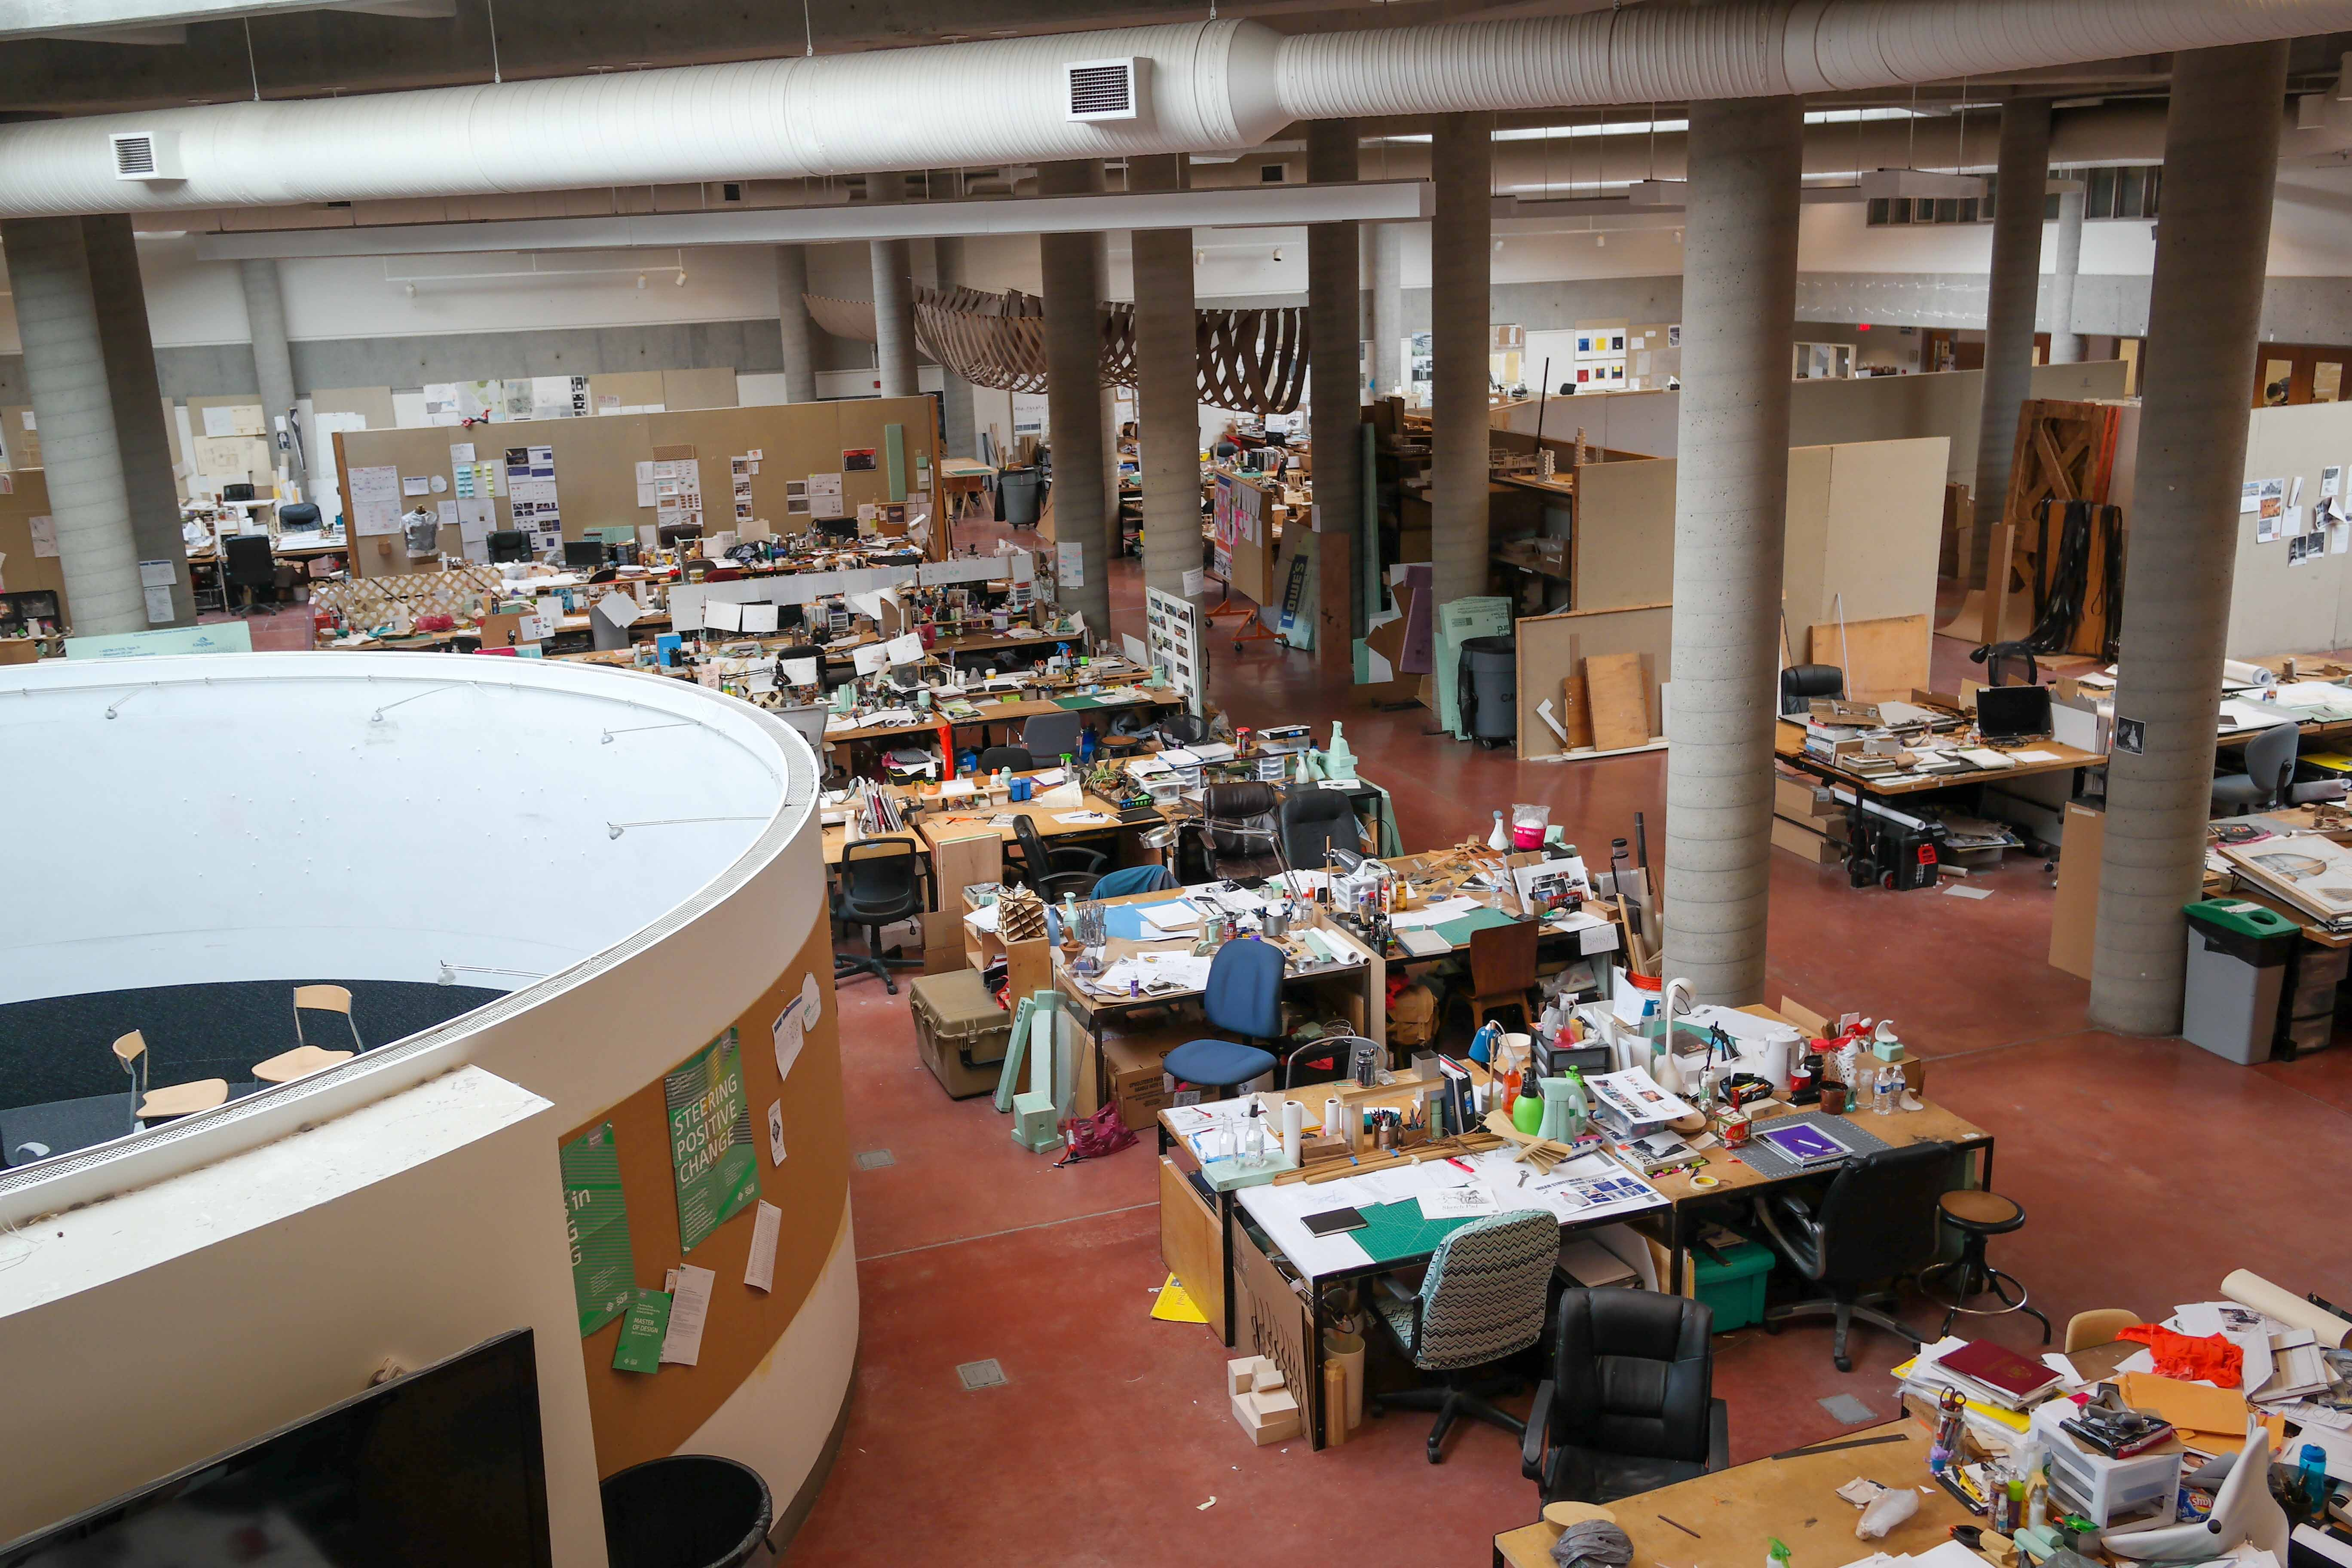 (Interior view) School of Architecture + Design; image by Smash the Iron Cage - Own work, CC BY-SA 4.0, https://commons.wikimedia.org/w/index.php?curid=39888414